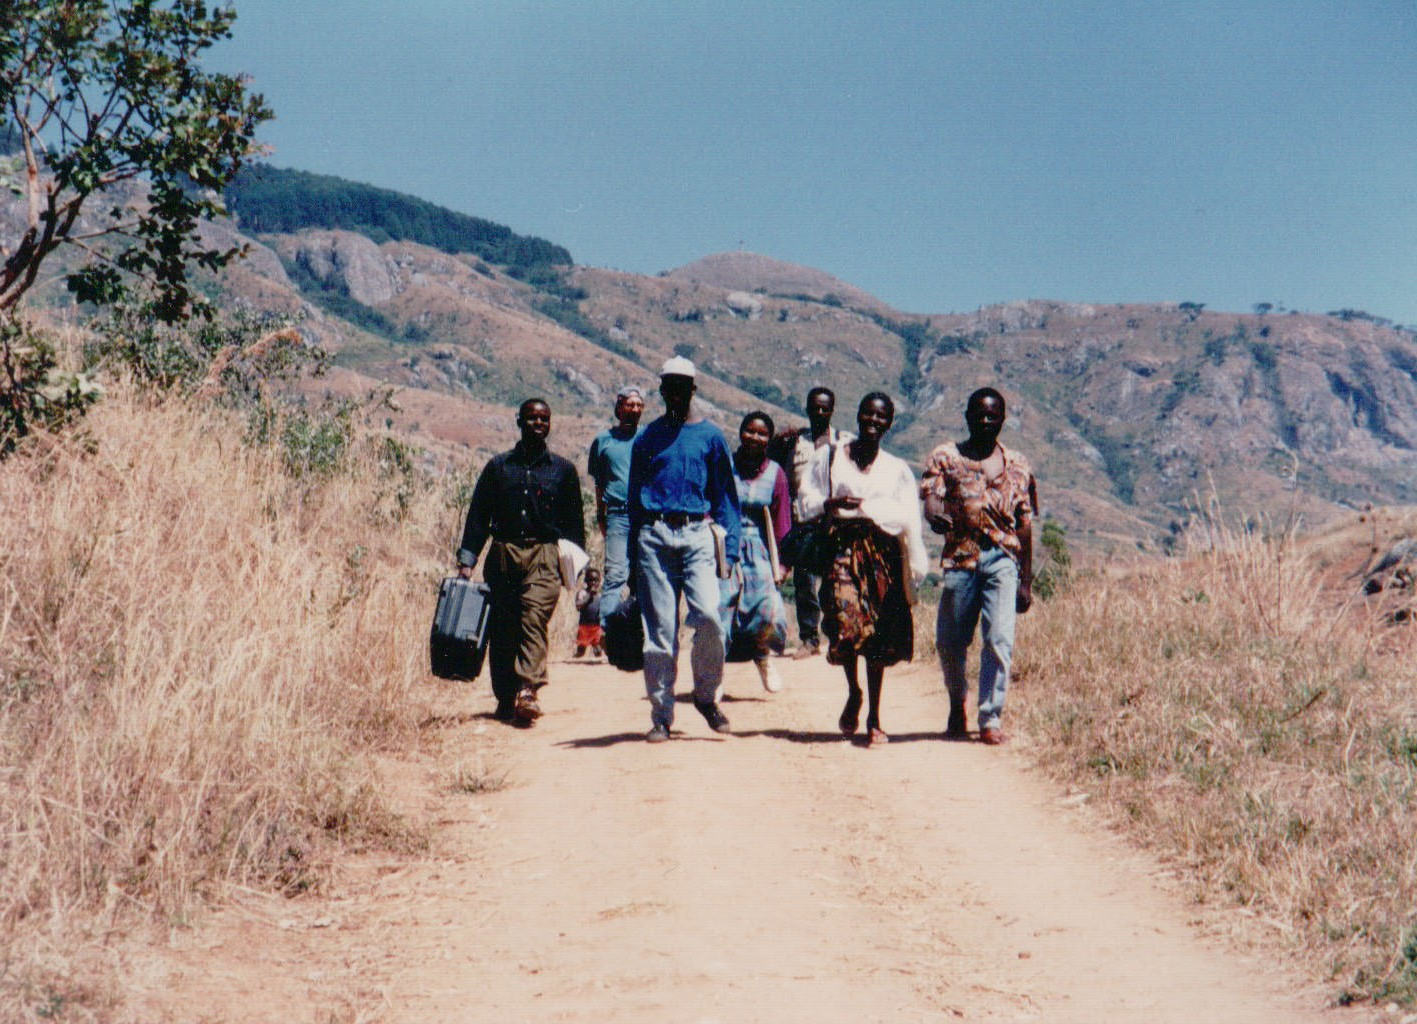 Rapid Appraisal team, Zomba watershed study area, Malawi  (Photography by Barron Orr)